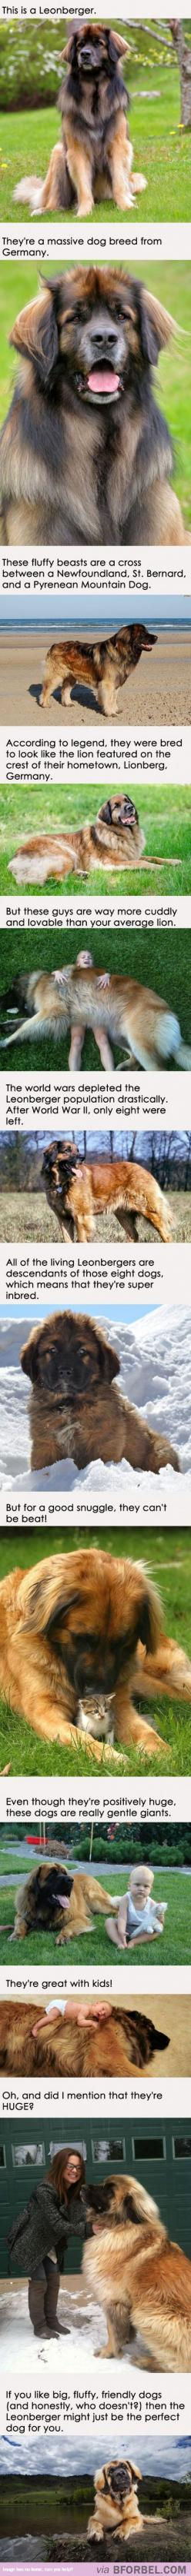 Adopt A Leonberger Today!: Leonberger Today, Dogs Leonberger, Leonberger Dogs, Leonburger Dog, Dog Breeds, Future Dogs, Animal